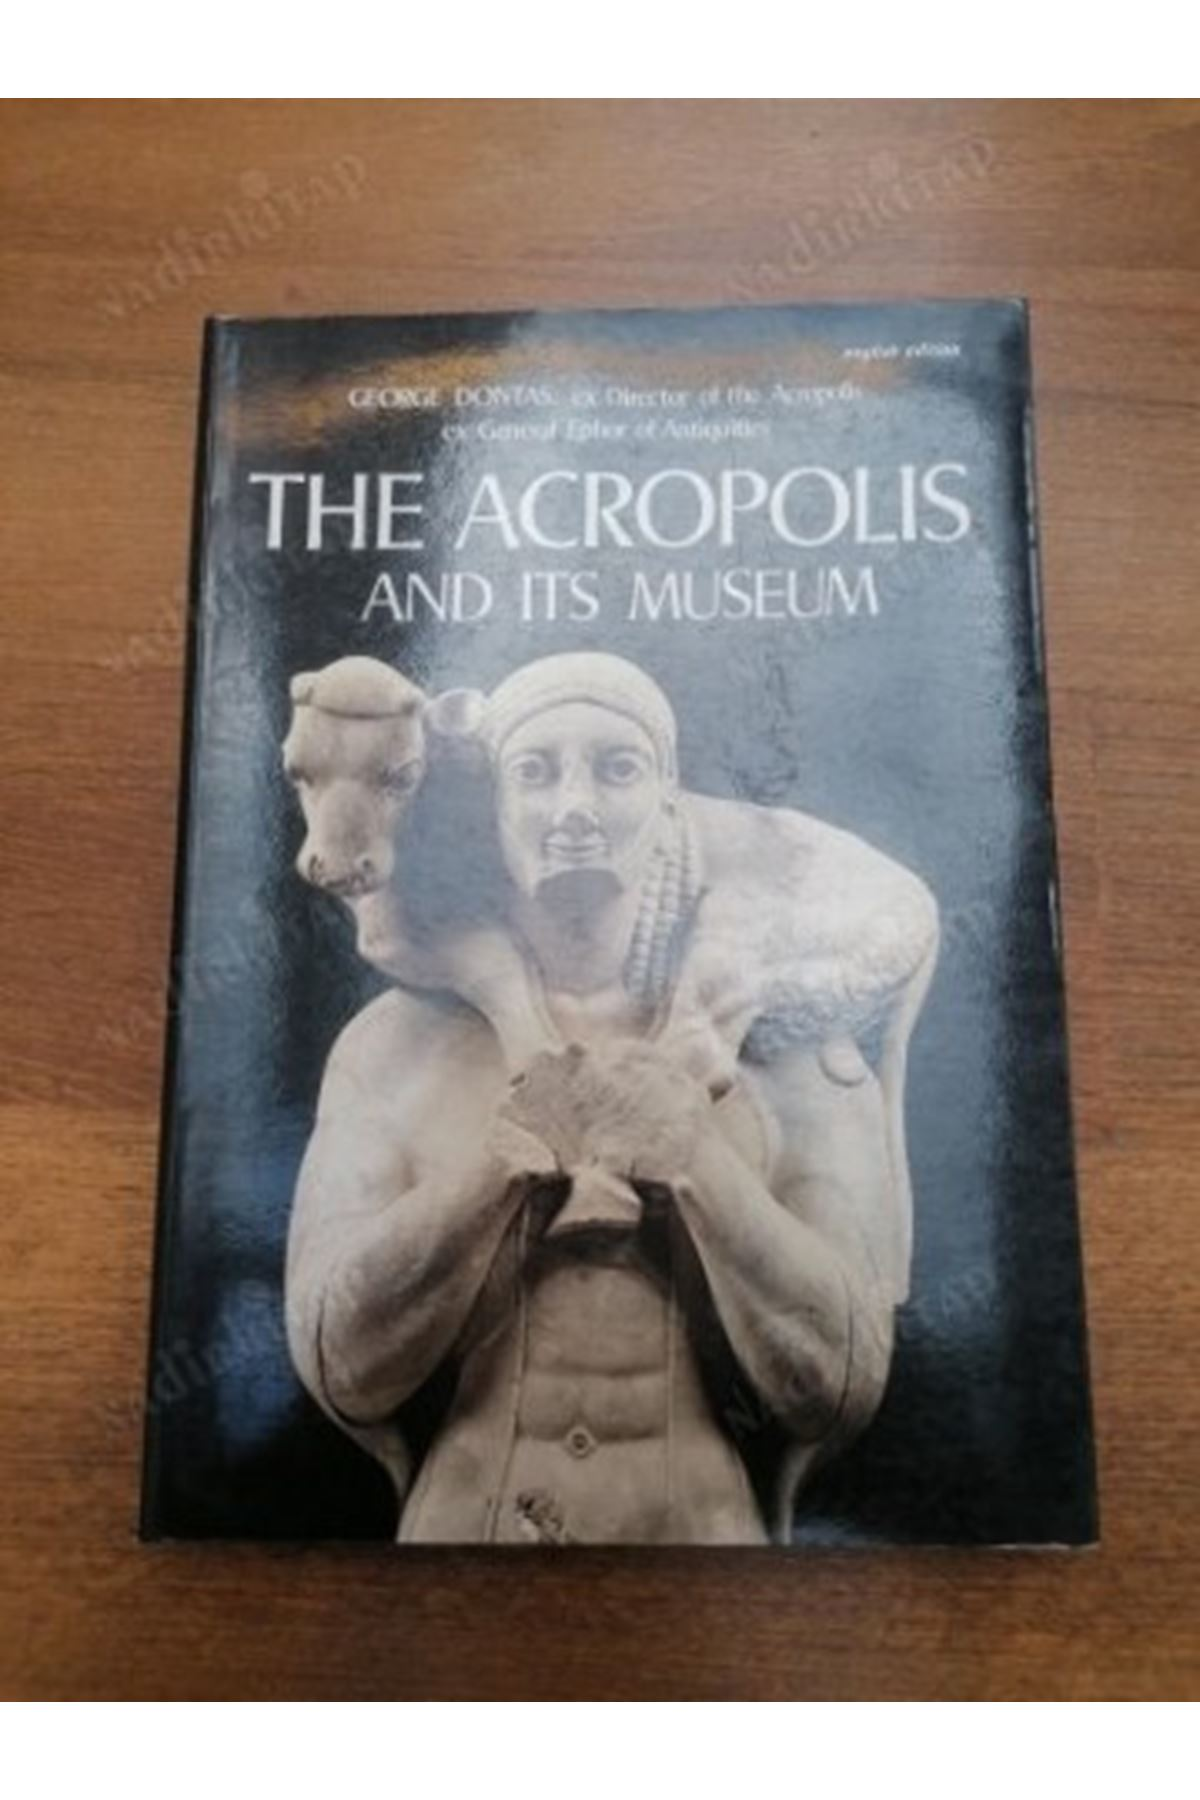 GEORGE DONTAS - THE ACROPOLİS AND İTS MUSEUM